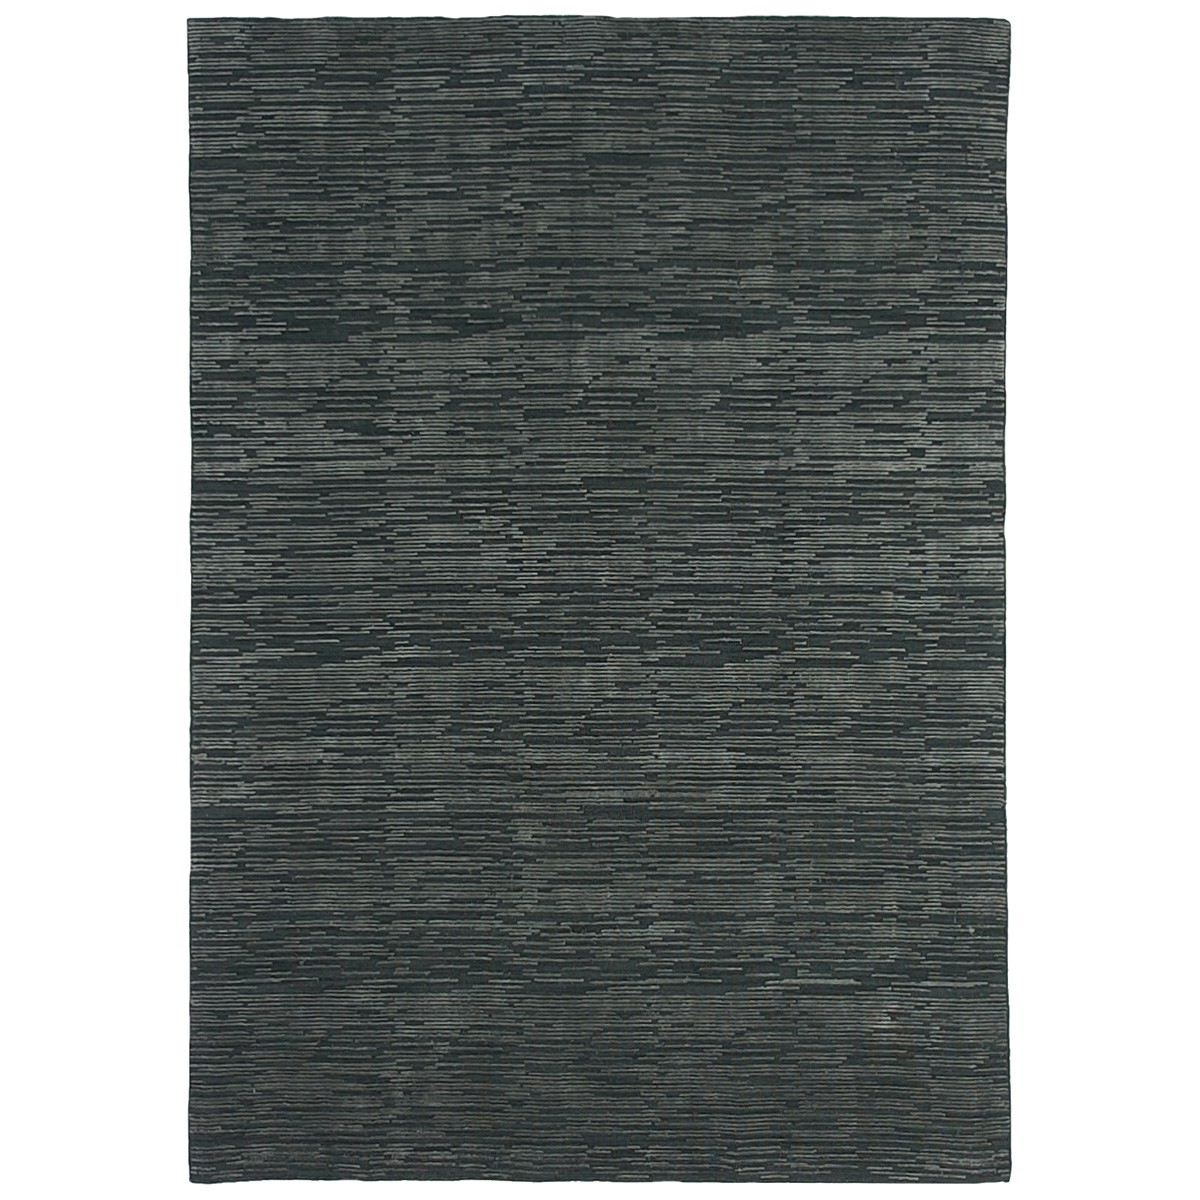 Timeless Stokes Hand Loomed Wool & Viscose Rug, 350x450cm, Charcoal / Grey